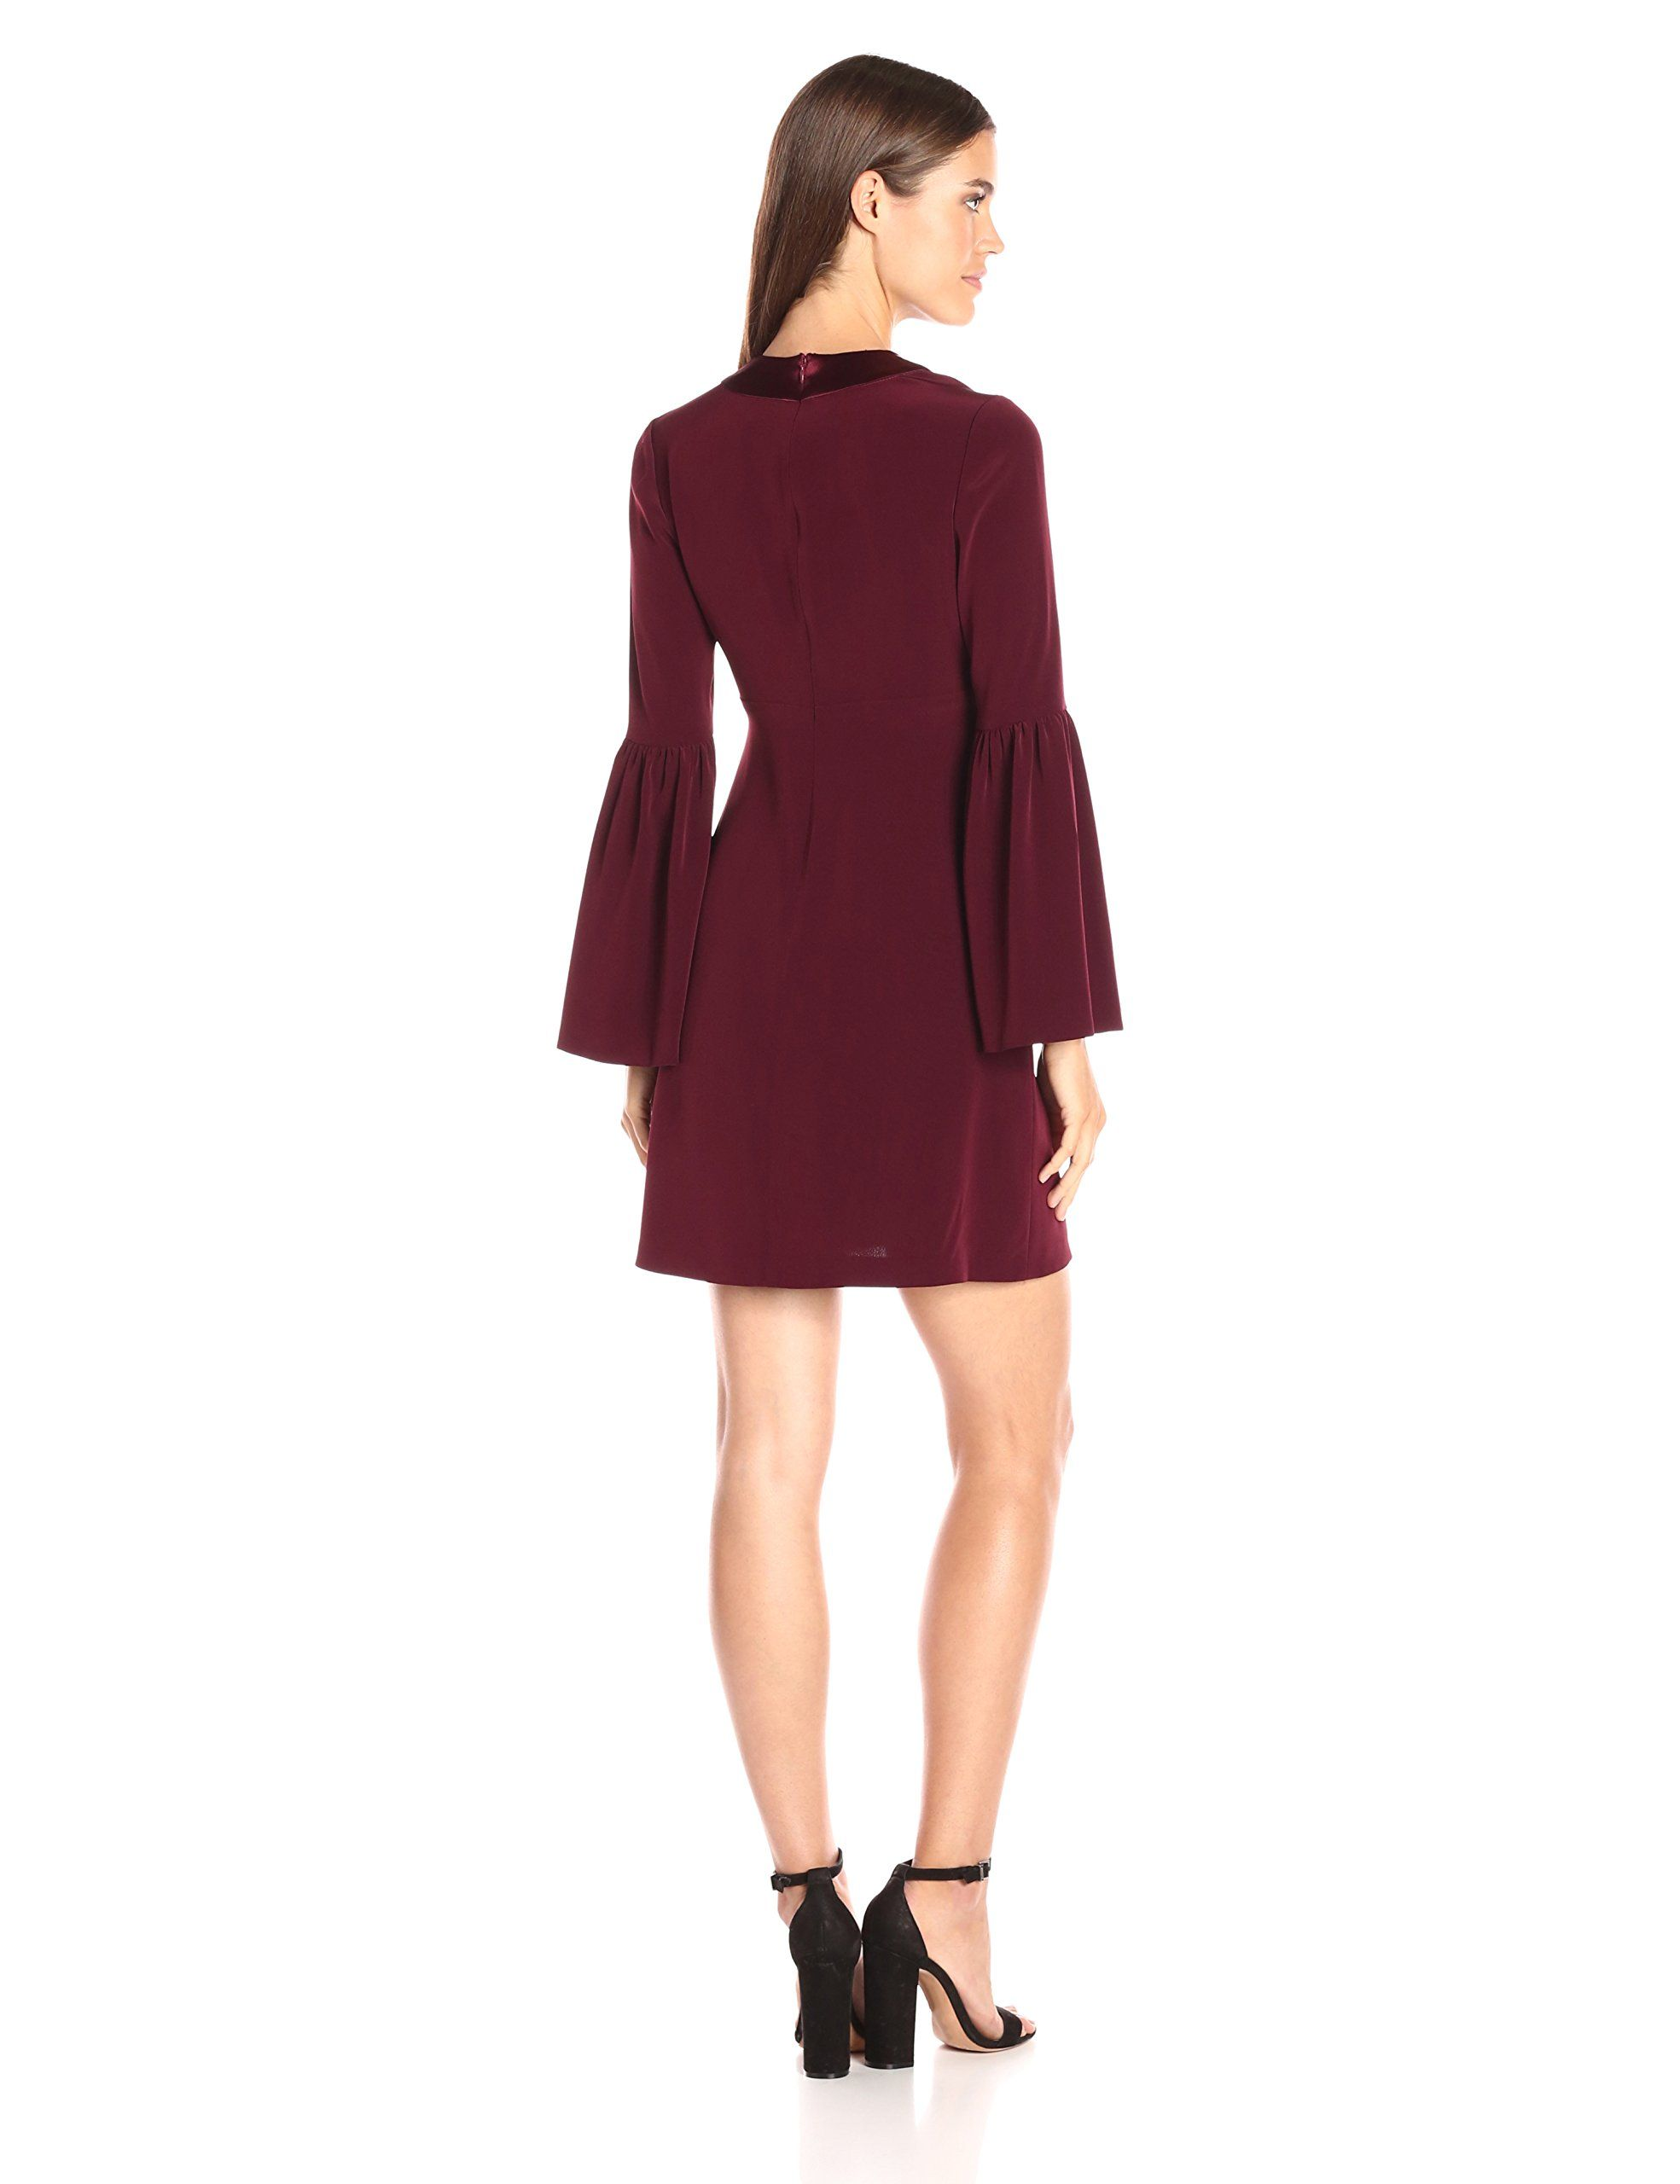 Jill jill stuart womens deepv long sleeved cocktail dress oxblood